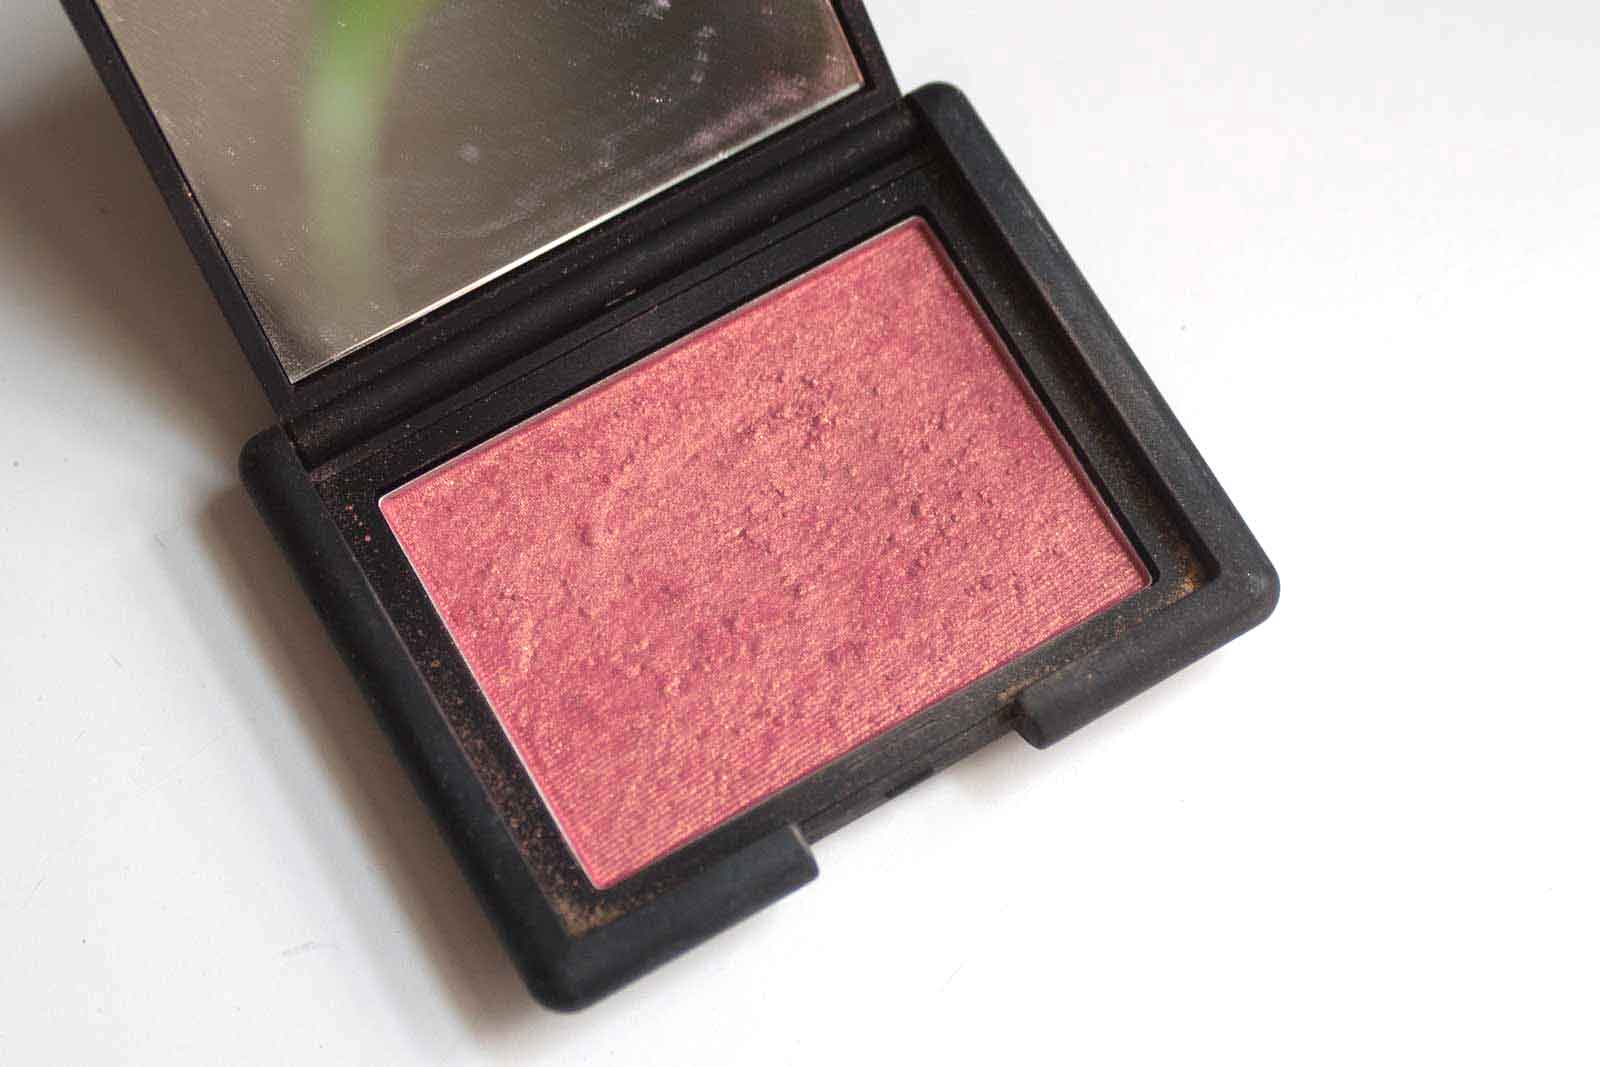 nars orgasm blush in the pan